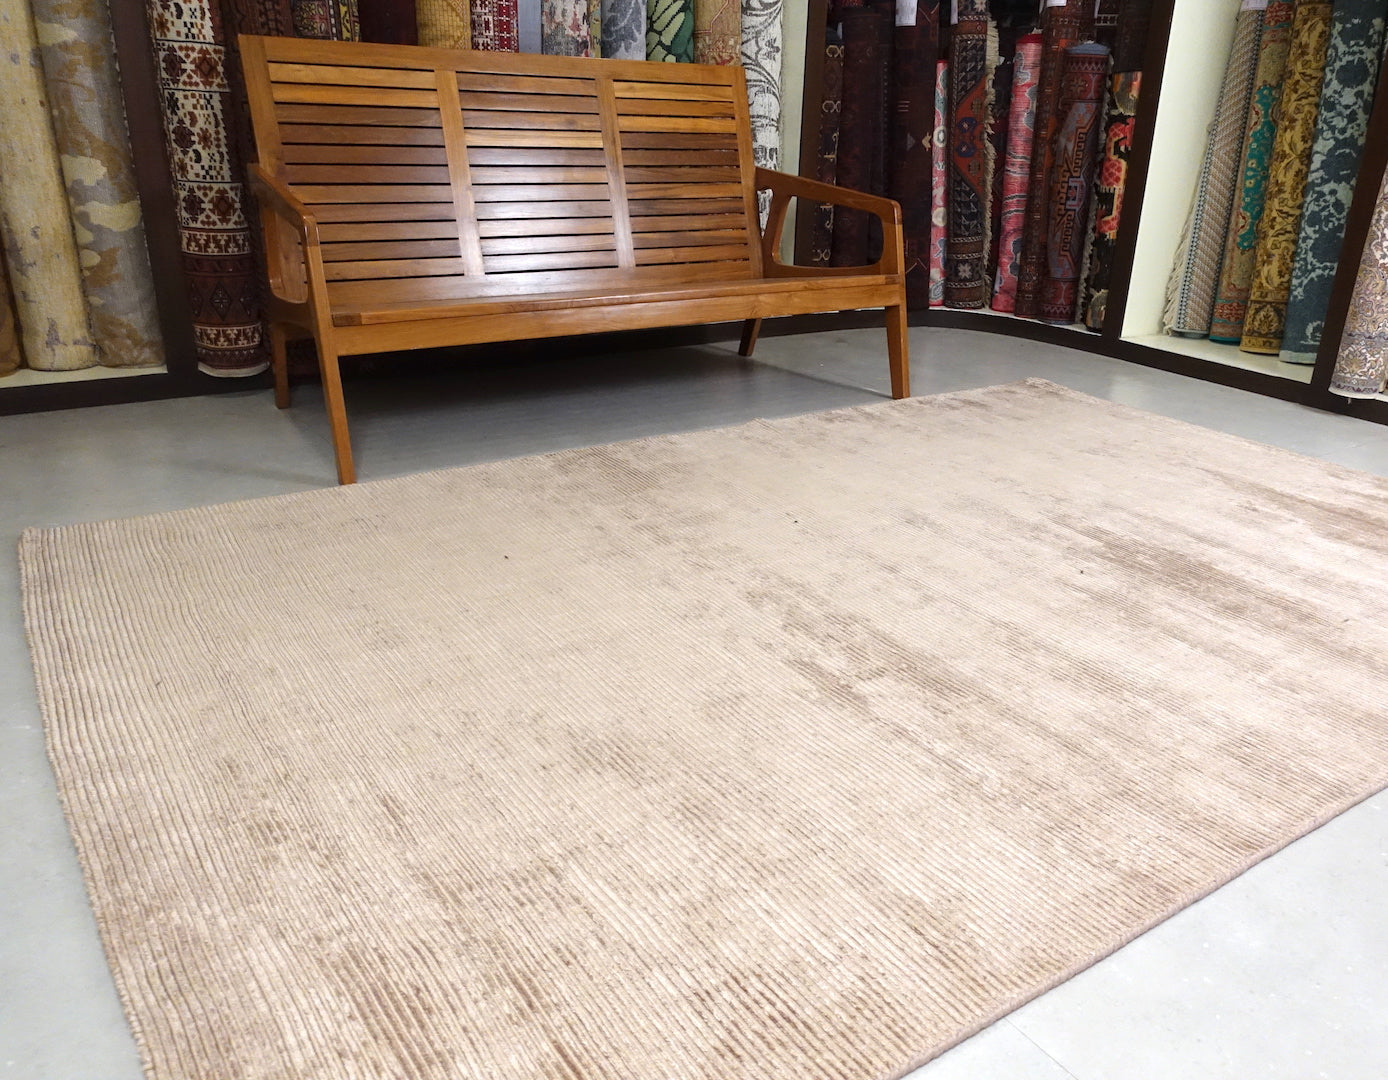 A 5 feet by 8 feet rug in brown.